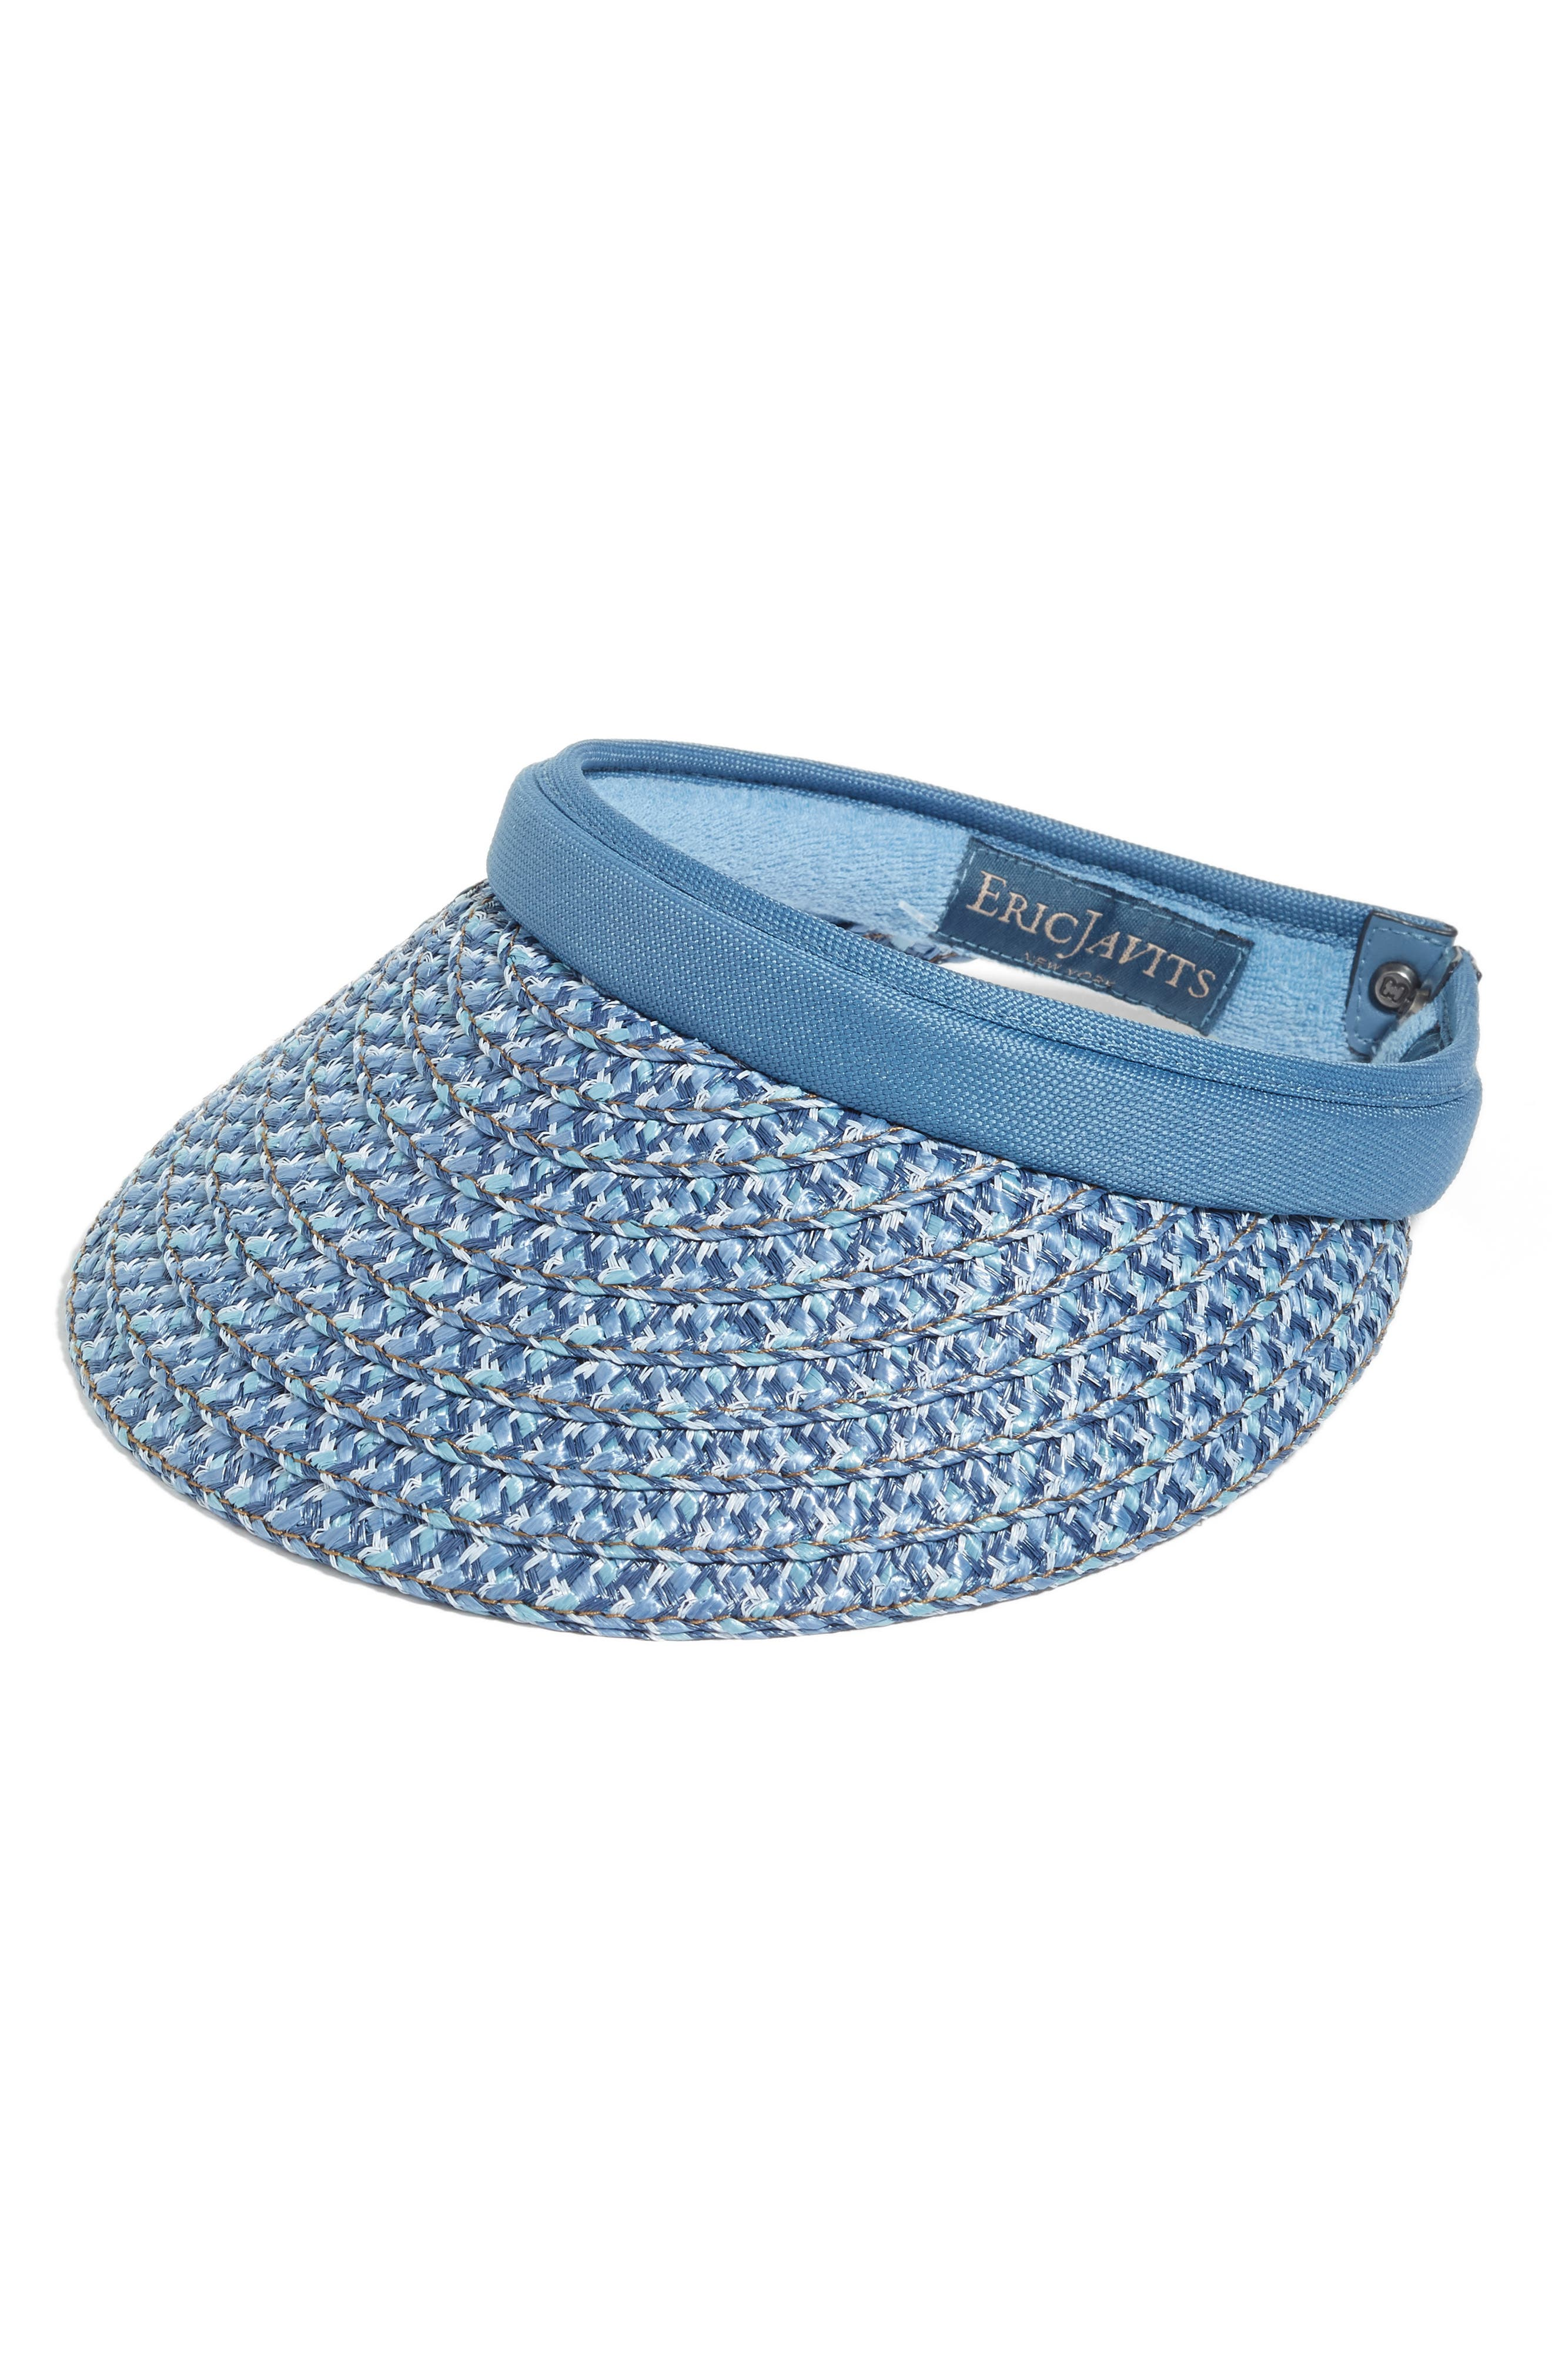 ERIC JAVITS Bradfield Packable Visor